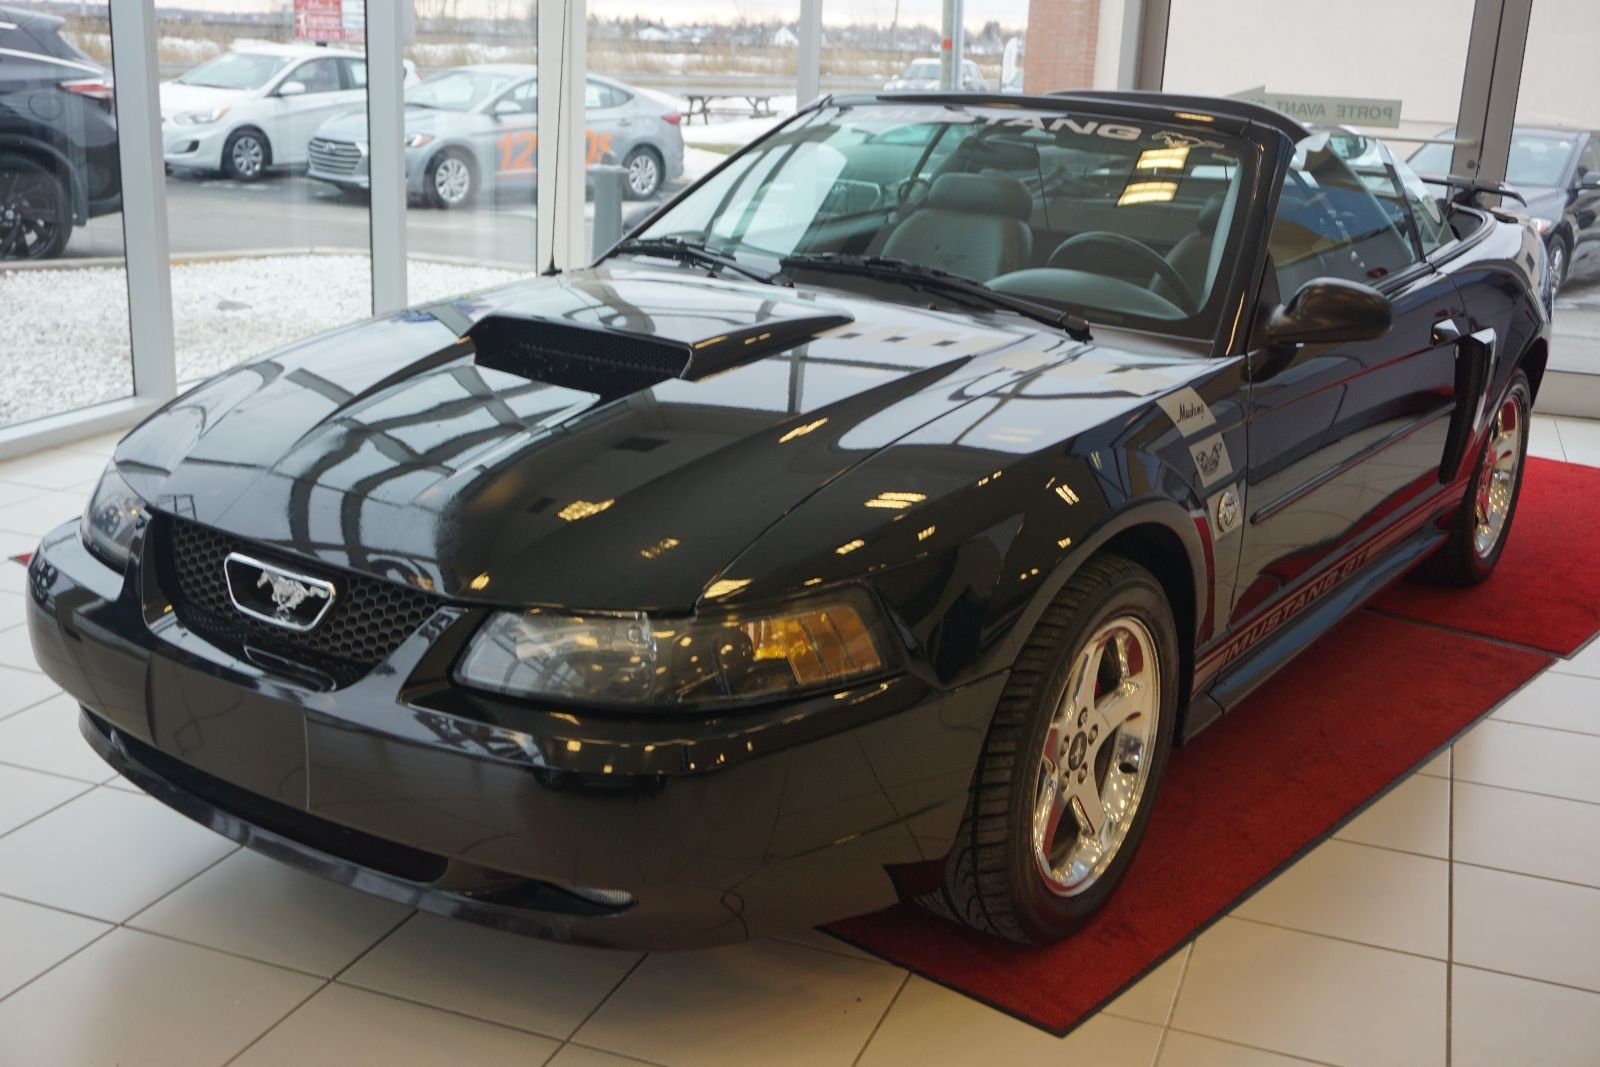 Olivier hyundai saint basile pre owned 2004 ford mustang gt décapotable comme neuf a voir absolument for sale in saint basile le grand